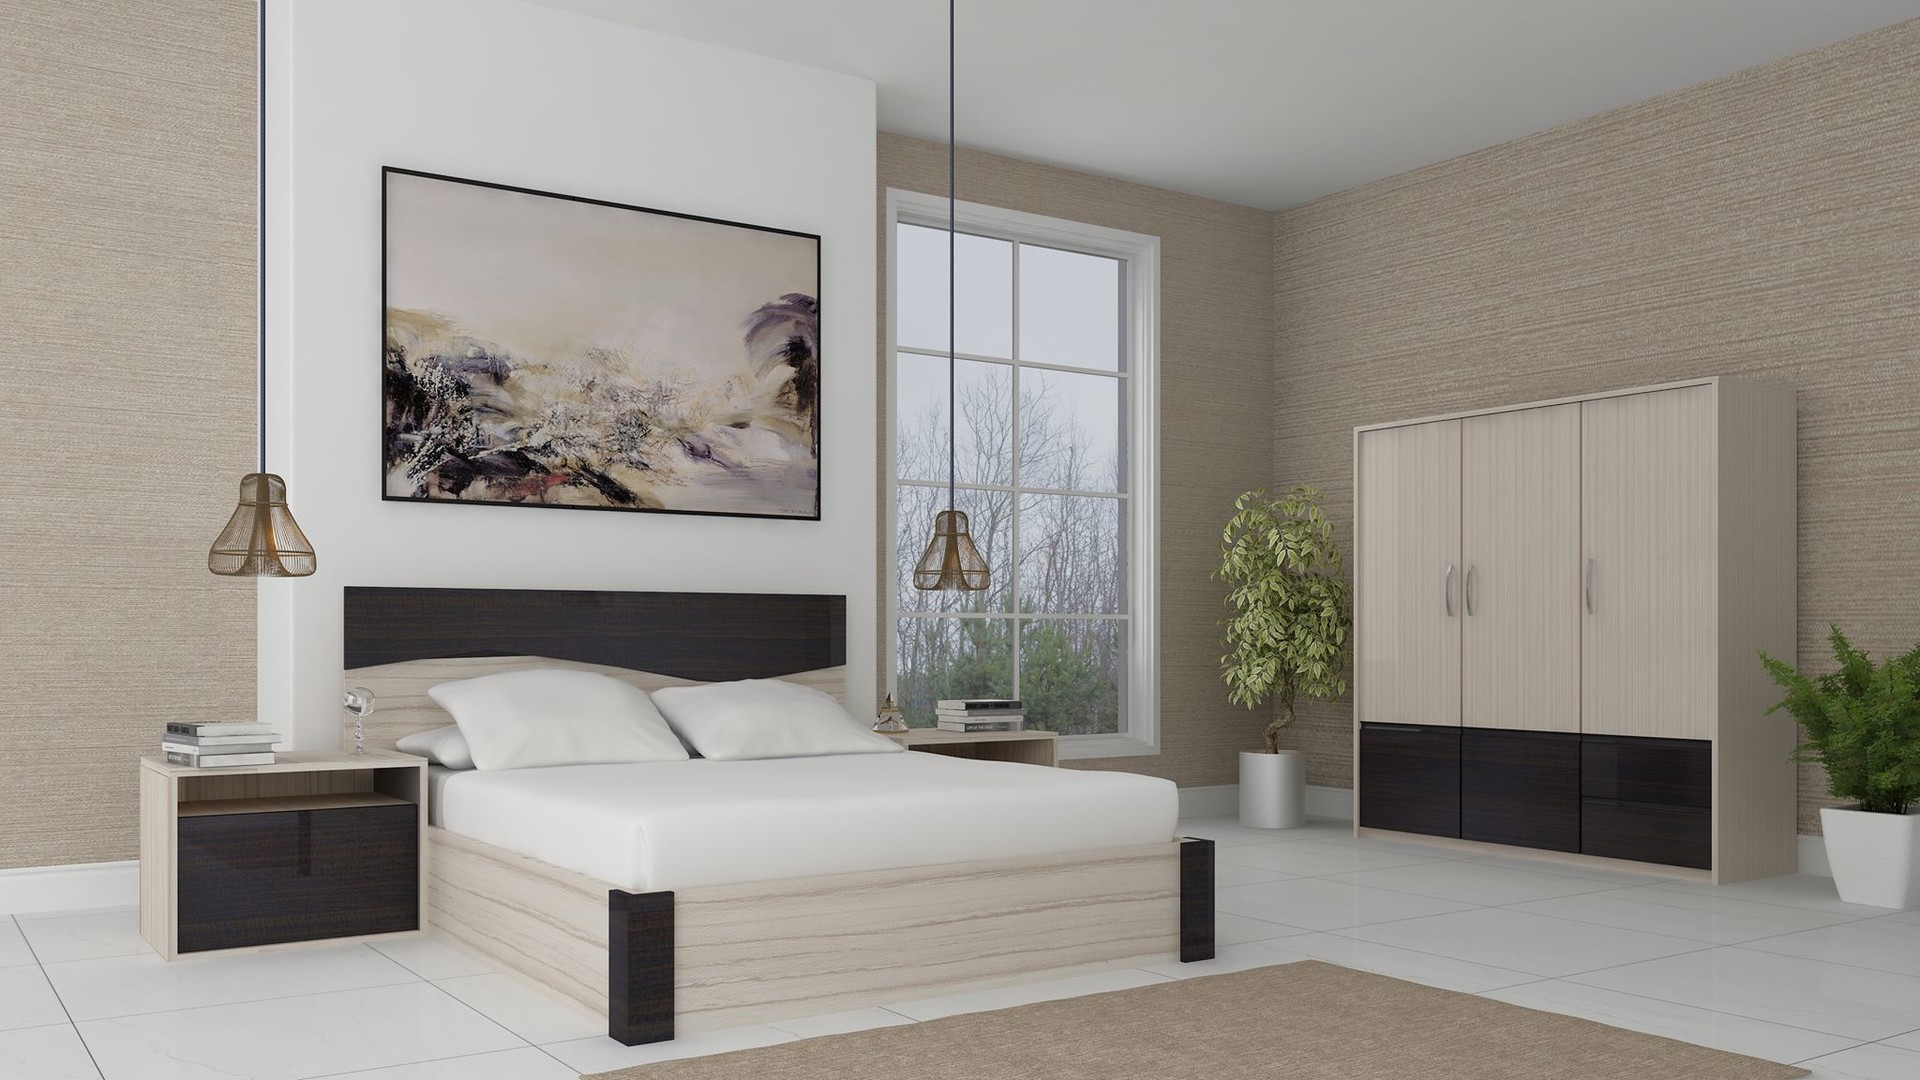 Architectural Rendering Services NYC For Bedroom Interior Design